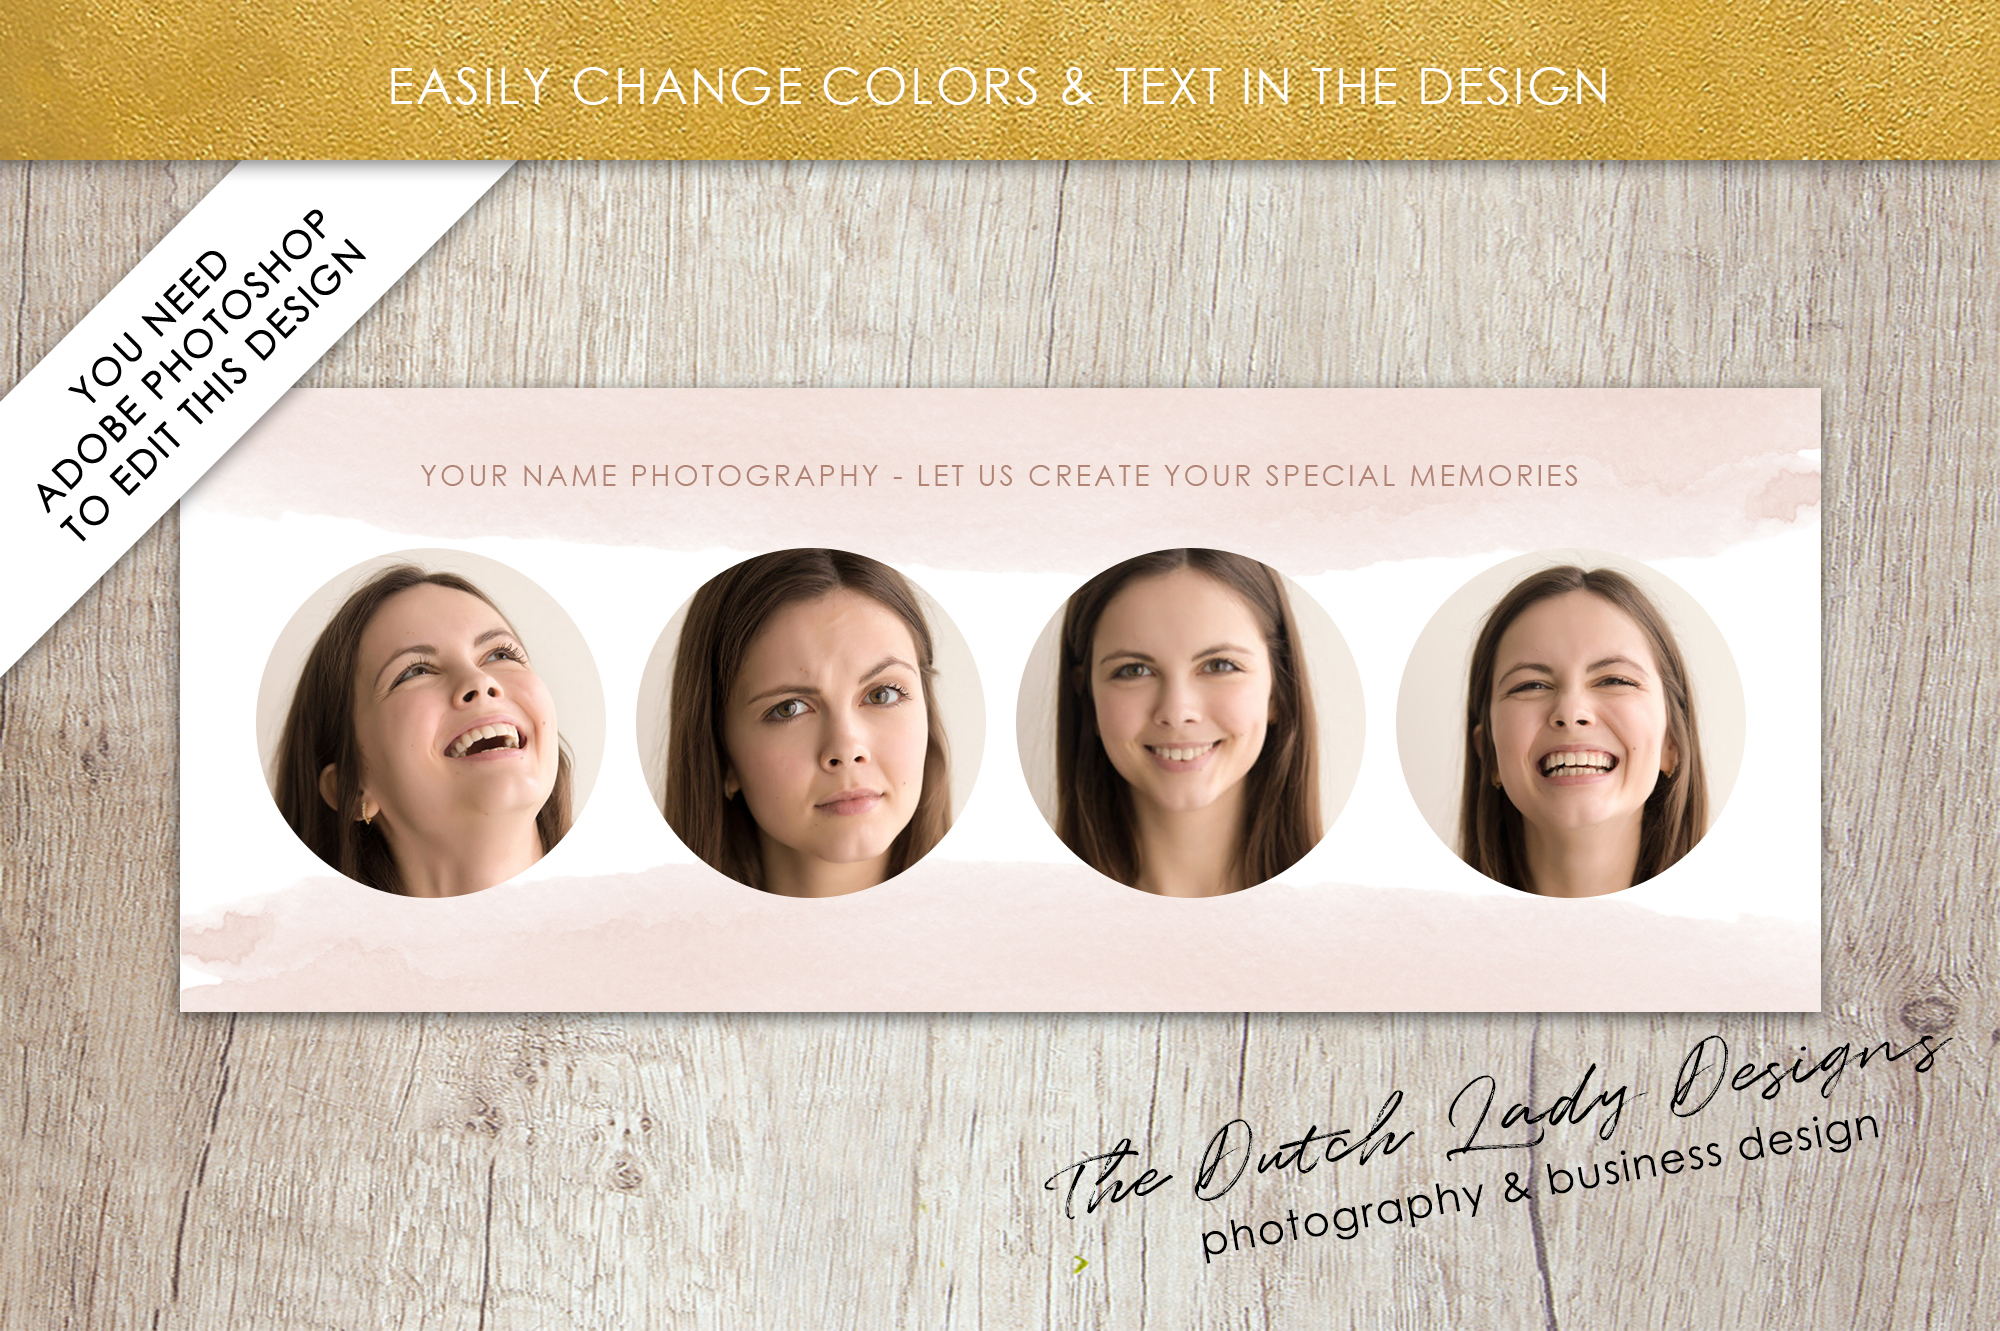 Photography Facebook Cover Banner Template - Design #13 example image 3